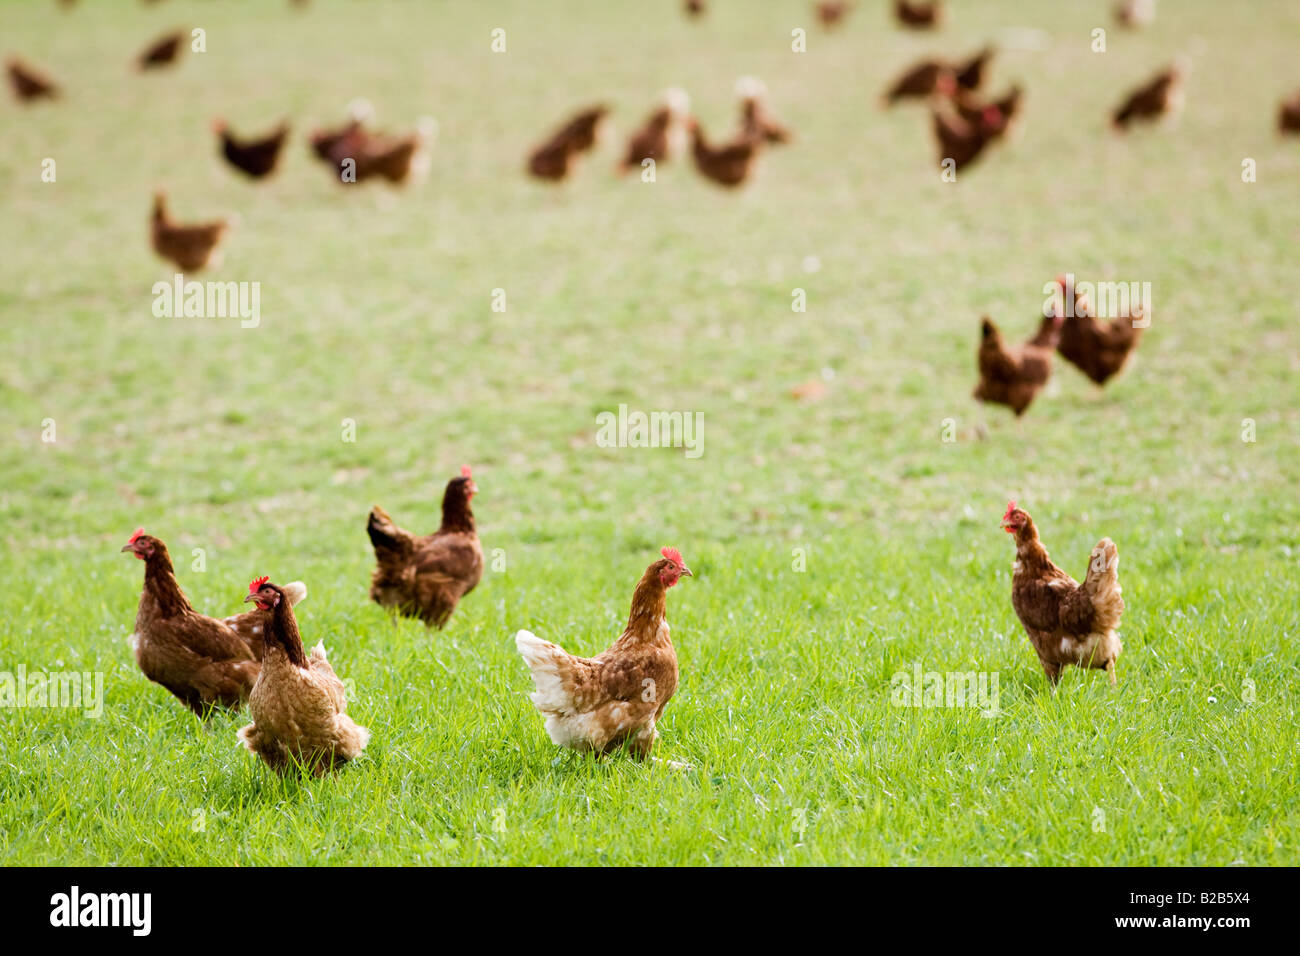 Free range chickens and hens Stow On The Wold Oxfordshire United Kingdom - Stock Image